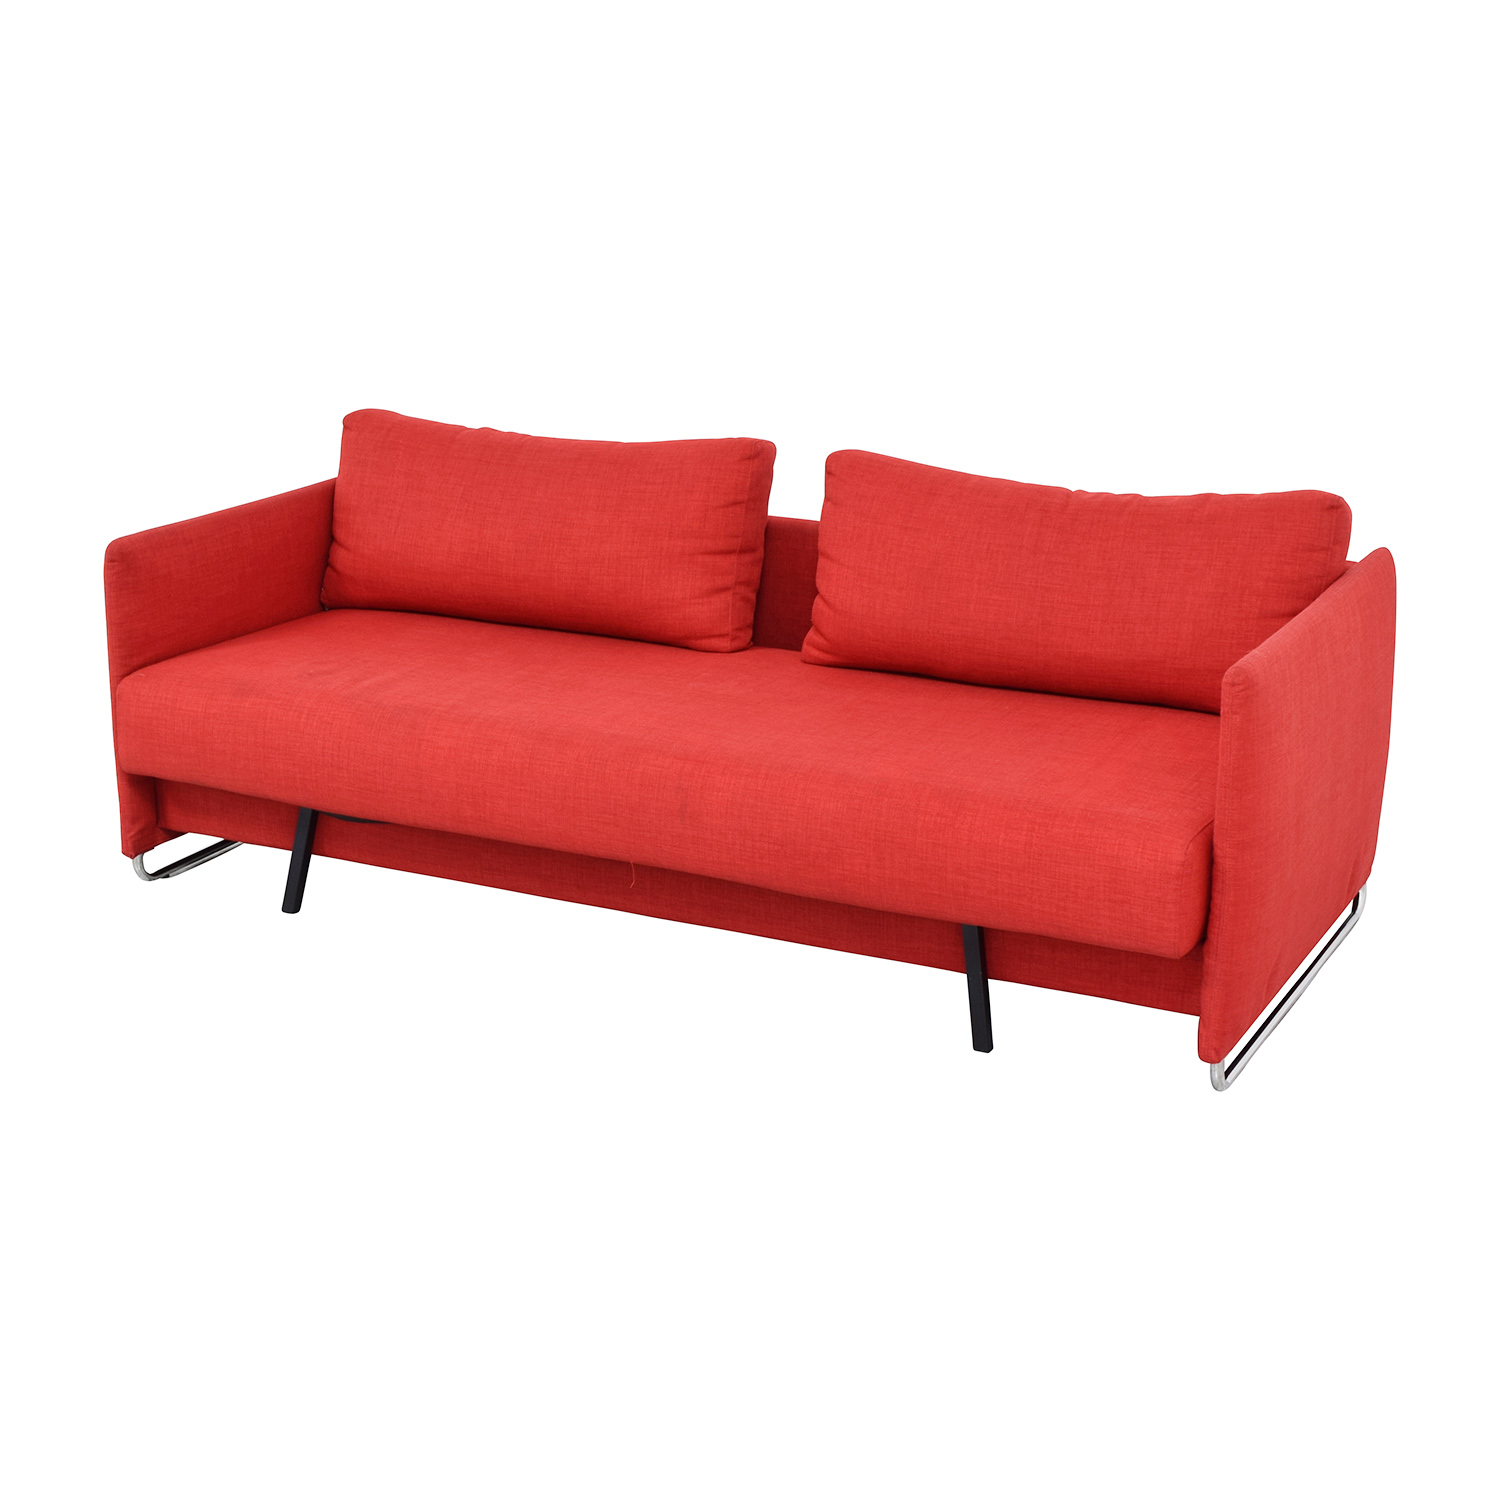 19 Cb2 Twin Sleeper Sofa Movie Salt And Pepper